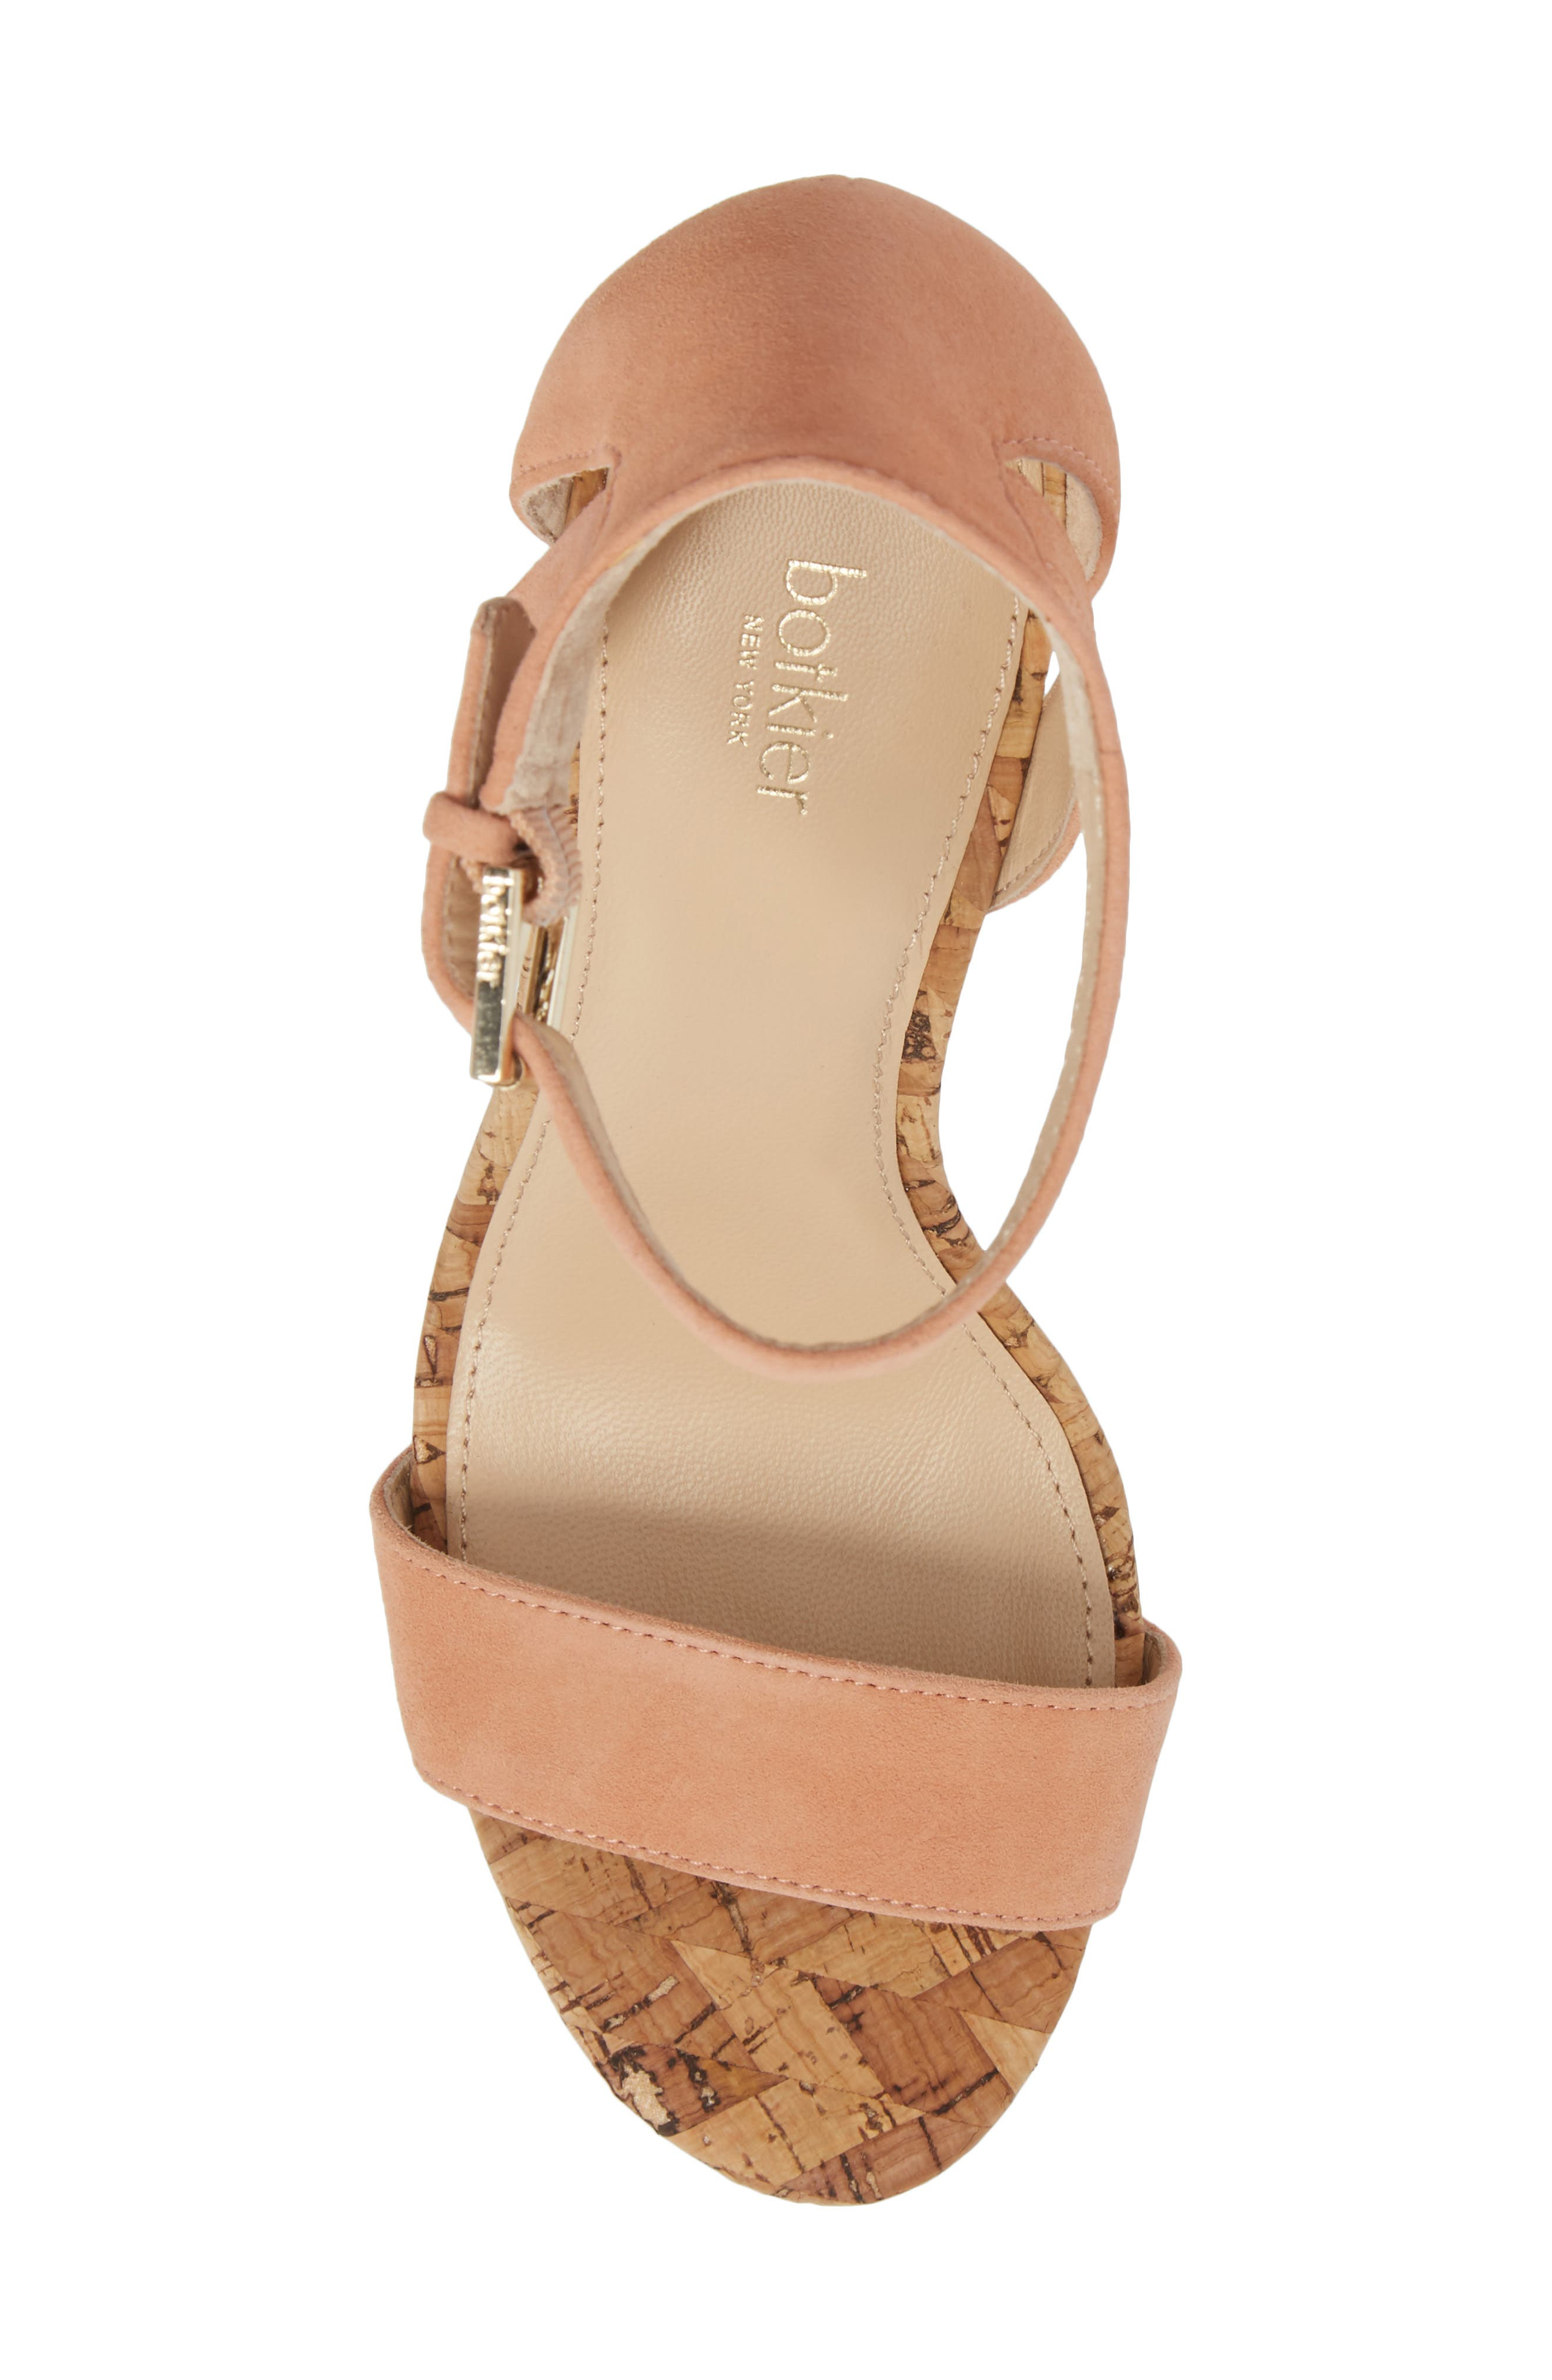 Gianna Ankle Strap Sandal,                             Alternate thumbnail 5, color,                             Soft Peach Suede